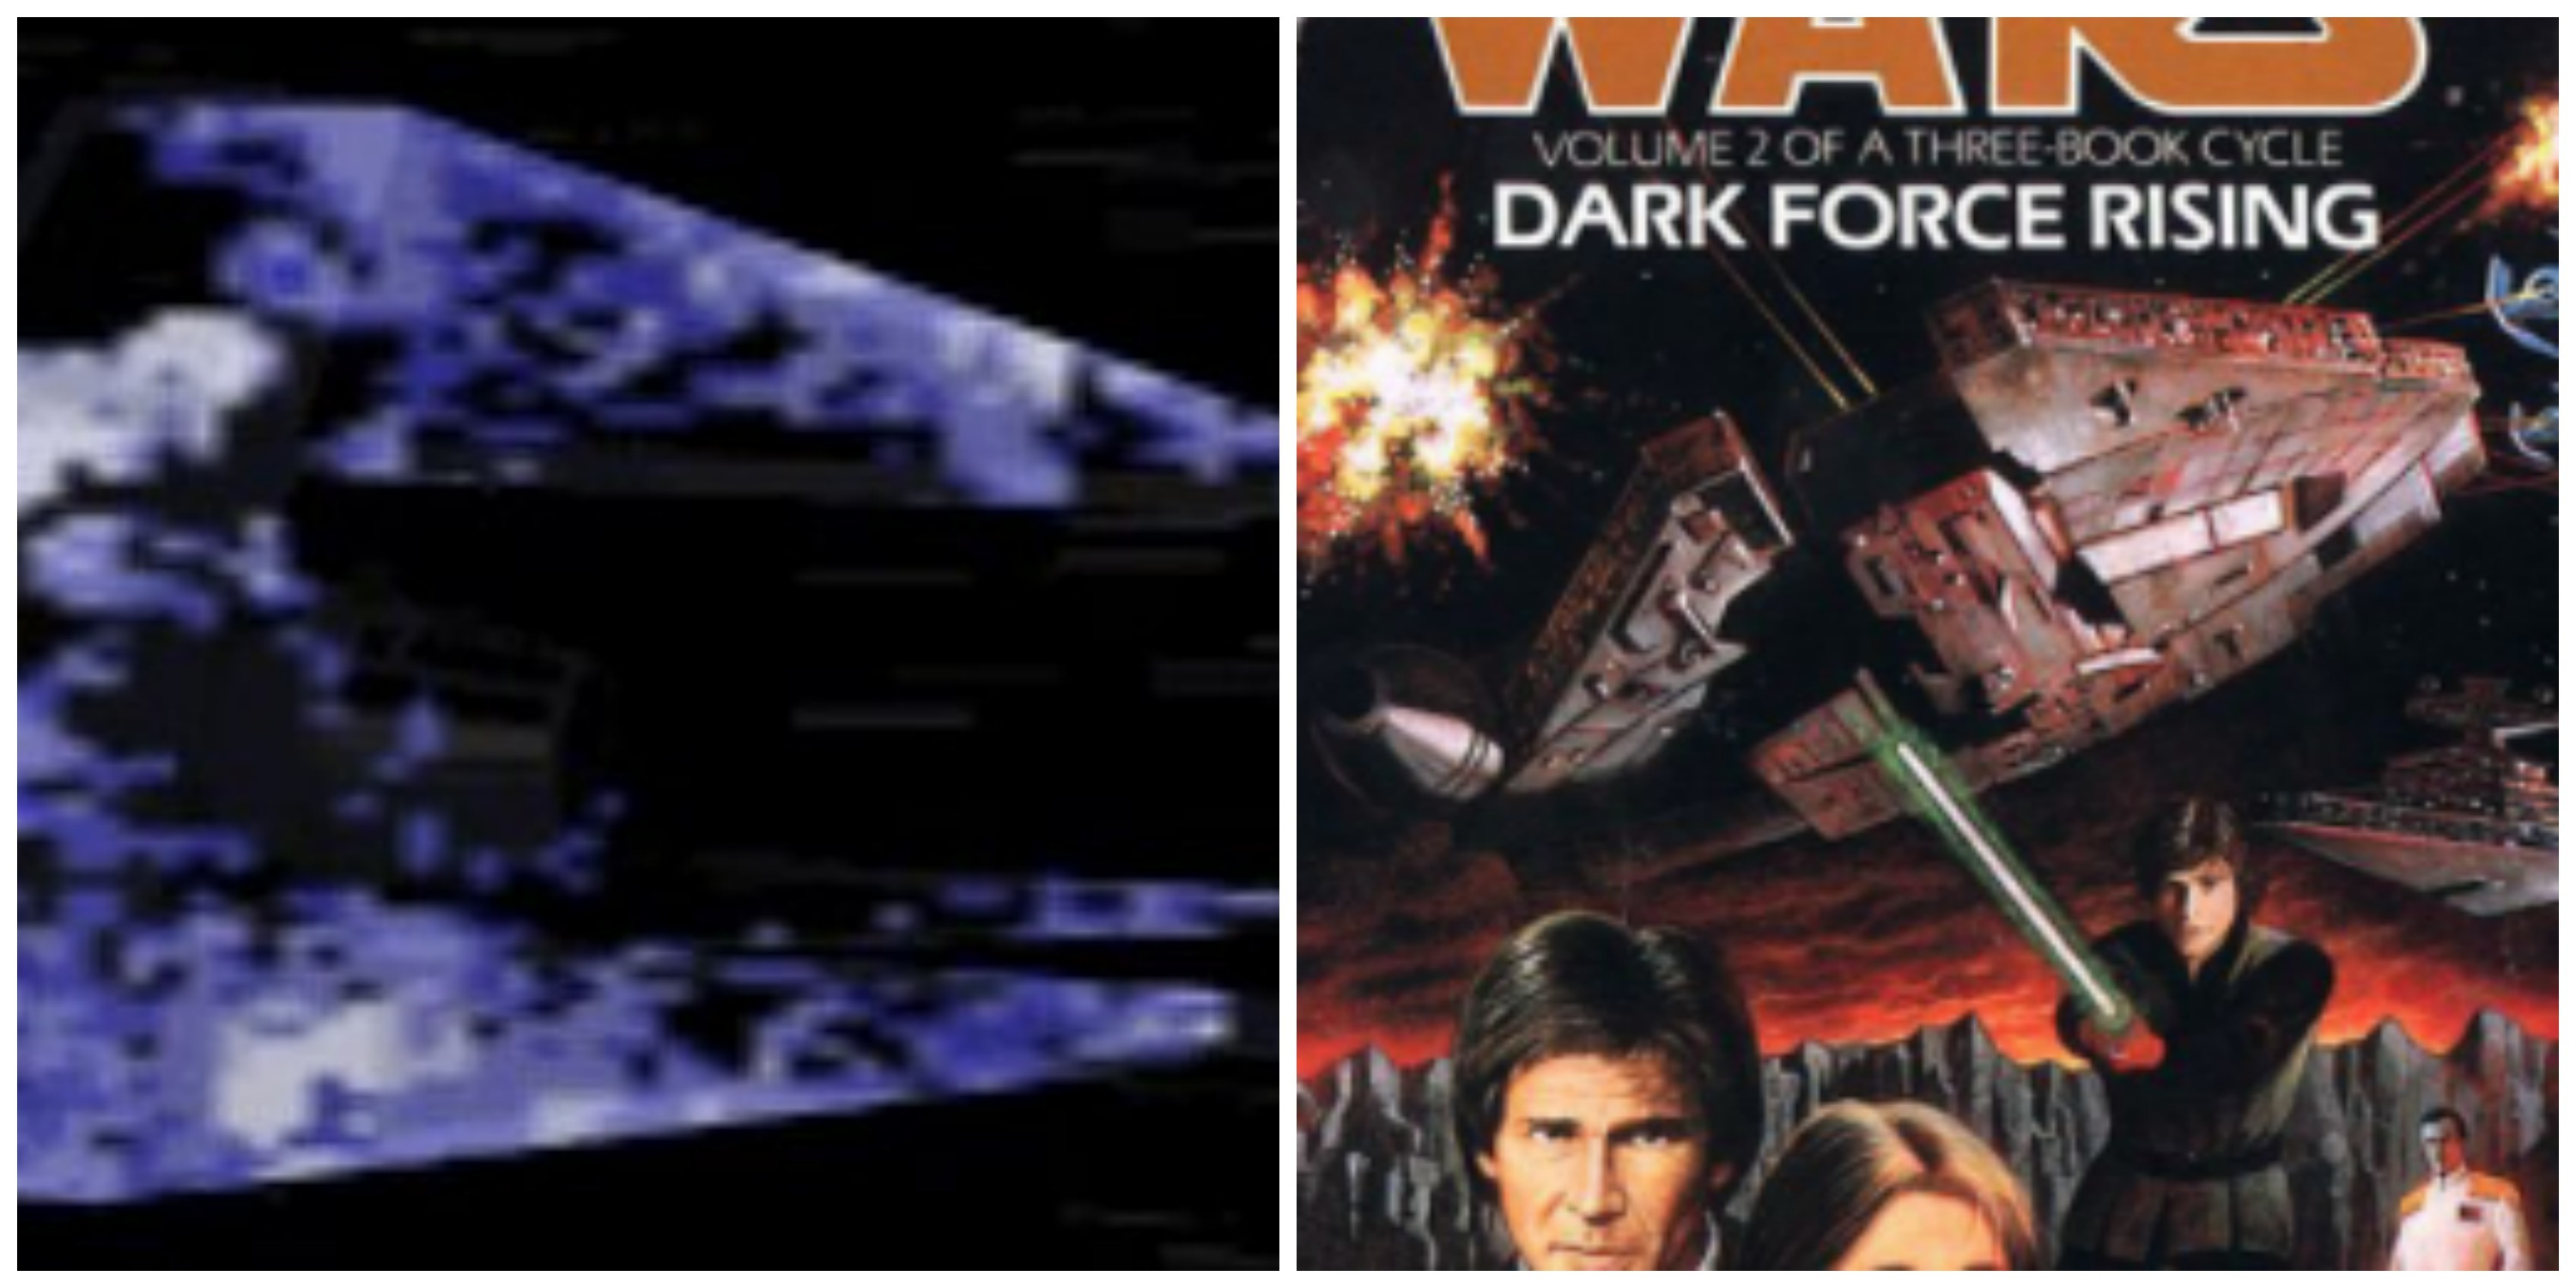 LEFT: A Phantom TIE. RIGHT: DARK FORCE RISING by Timothy Zahn